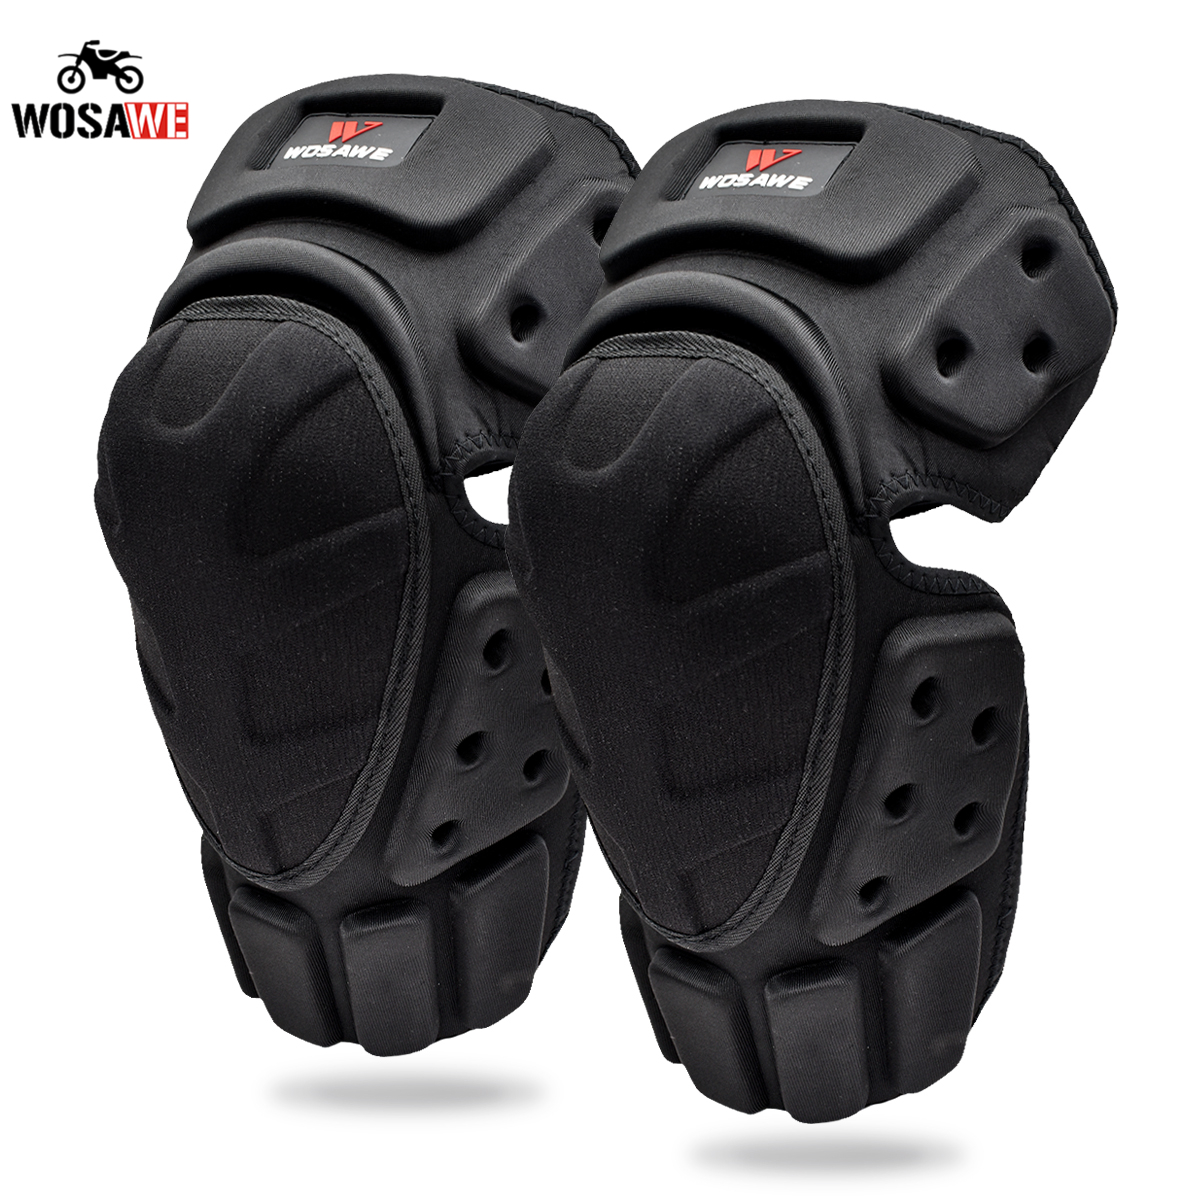 WOSAWE Motorcycle Knee Pads Motocross Knee Protection Moto Racing Protective Guard Gear Motorbike Knee Protector MTB Knee